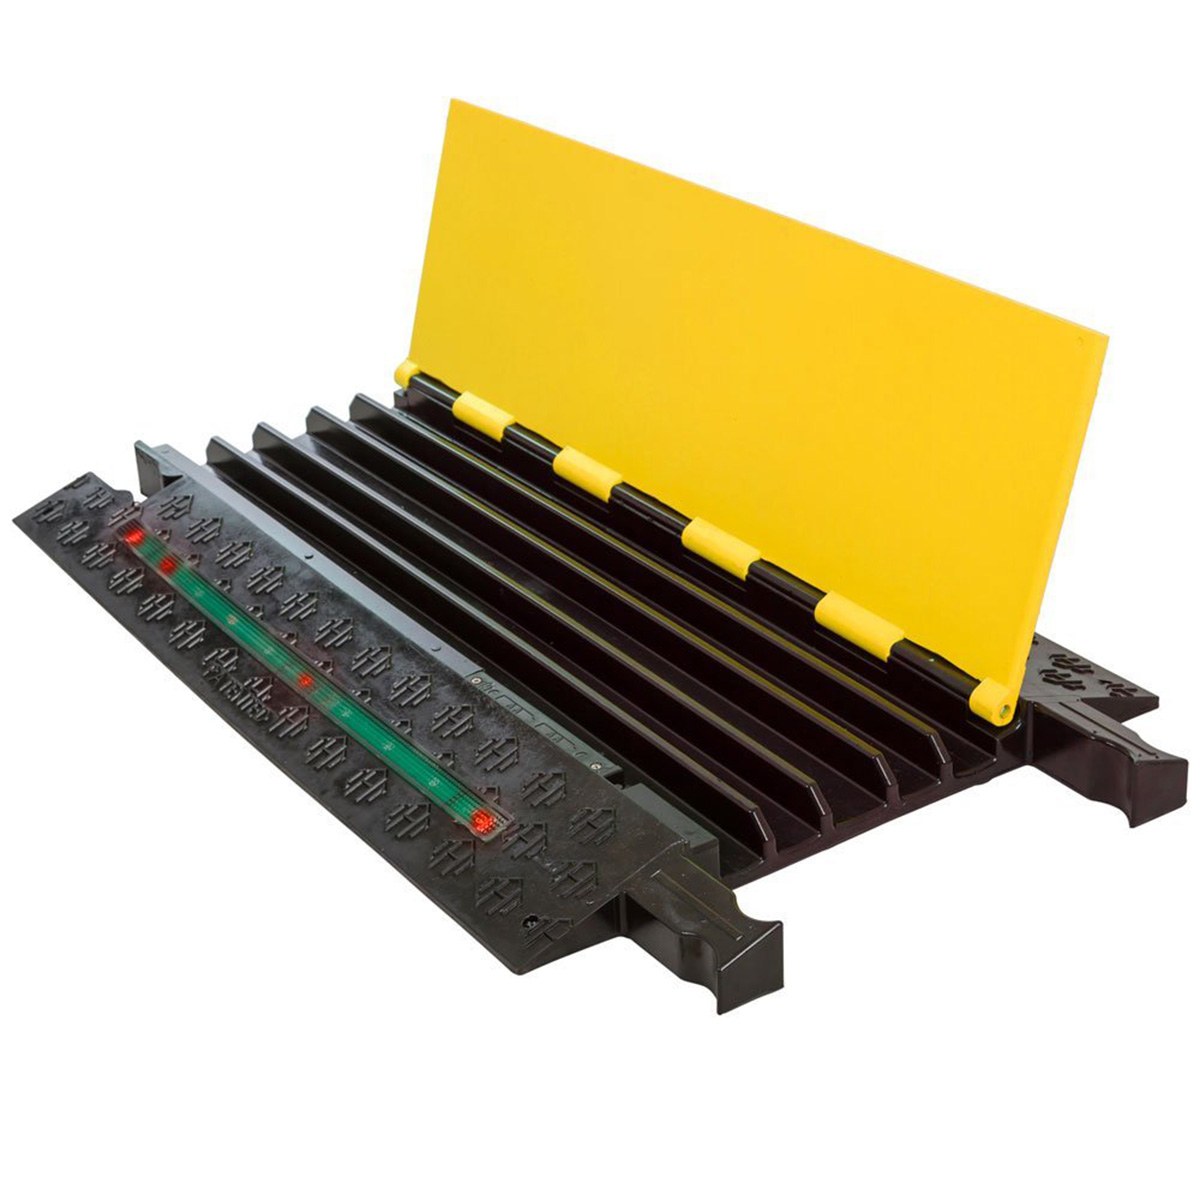 Firefly 174 Led Illuminated Cable Protector Cable Ramps